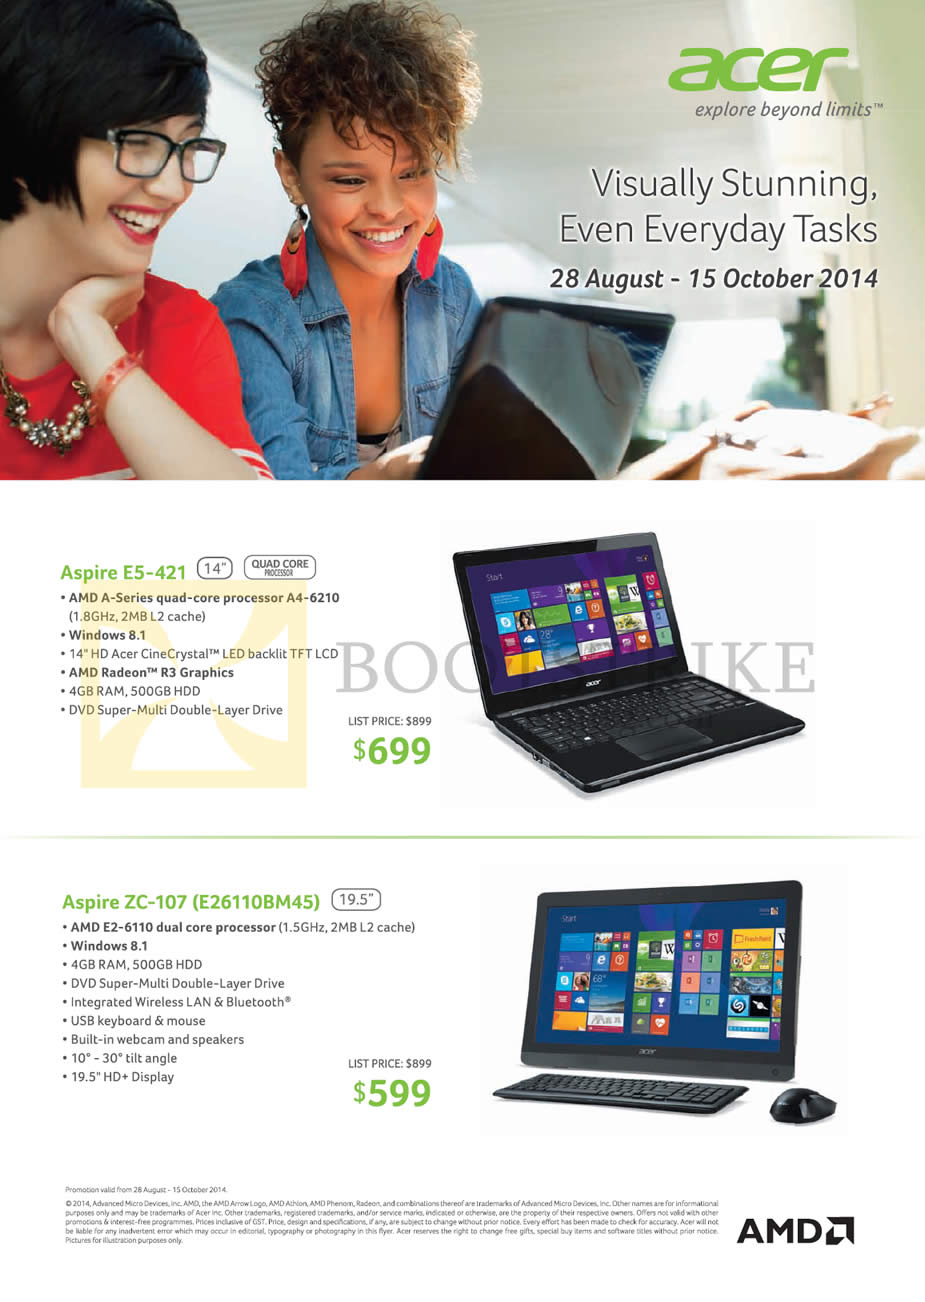 COMEX 2014 price list image brochure of Acer Notebooks AMD Aspire E5-421, ZC-107